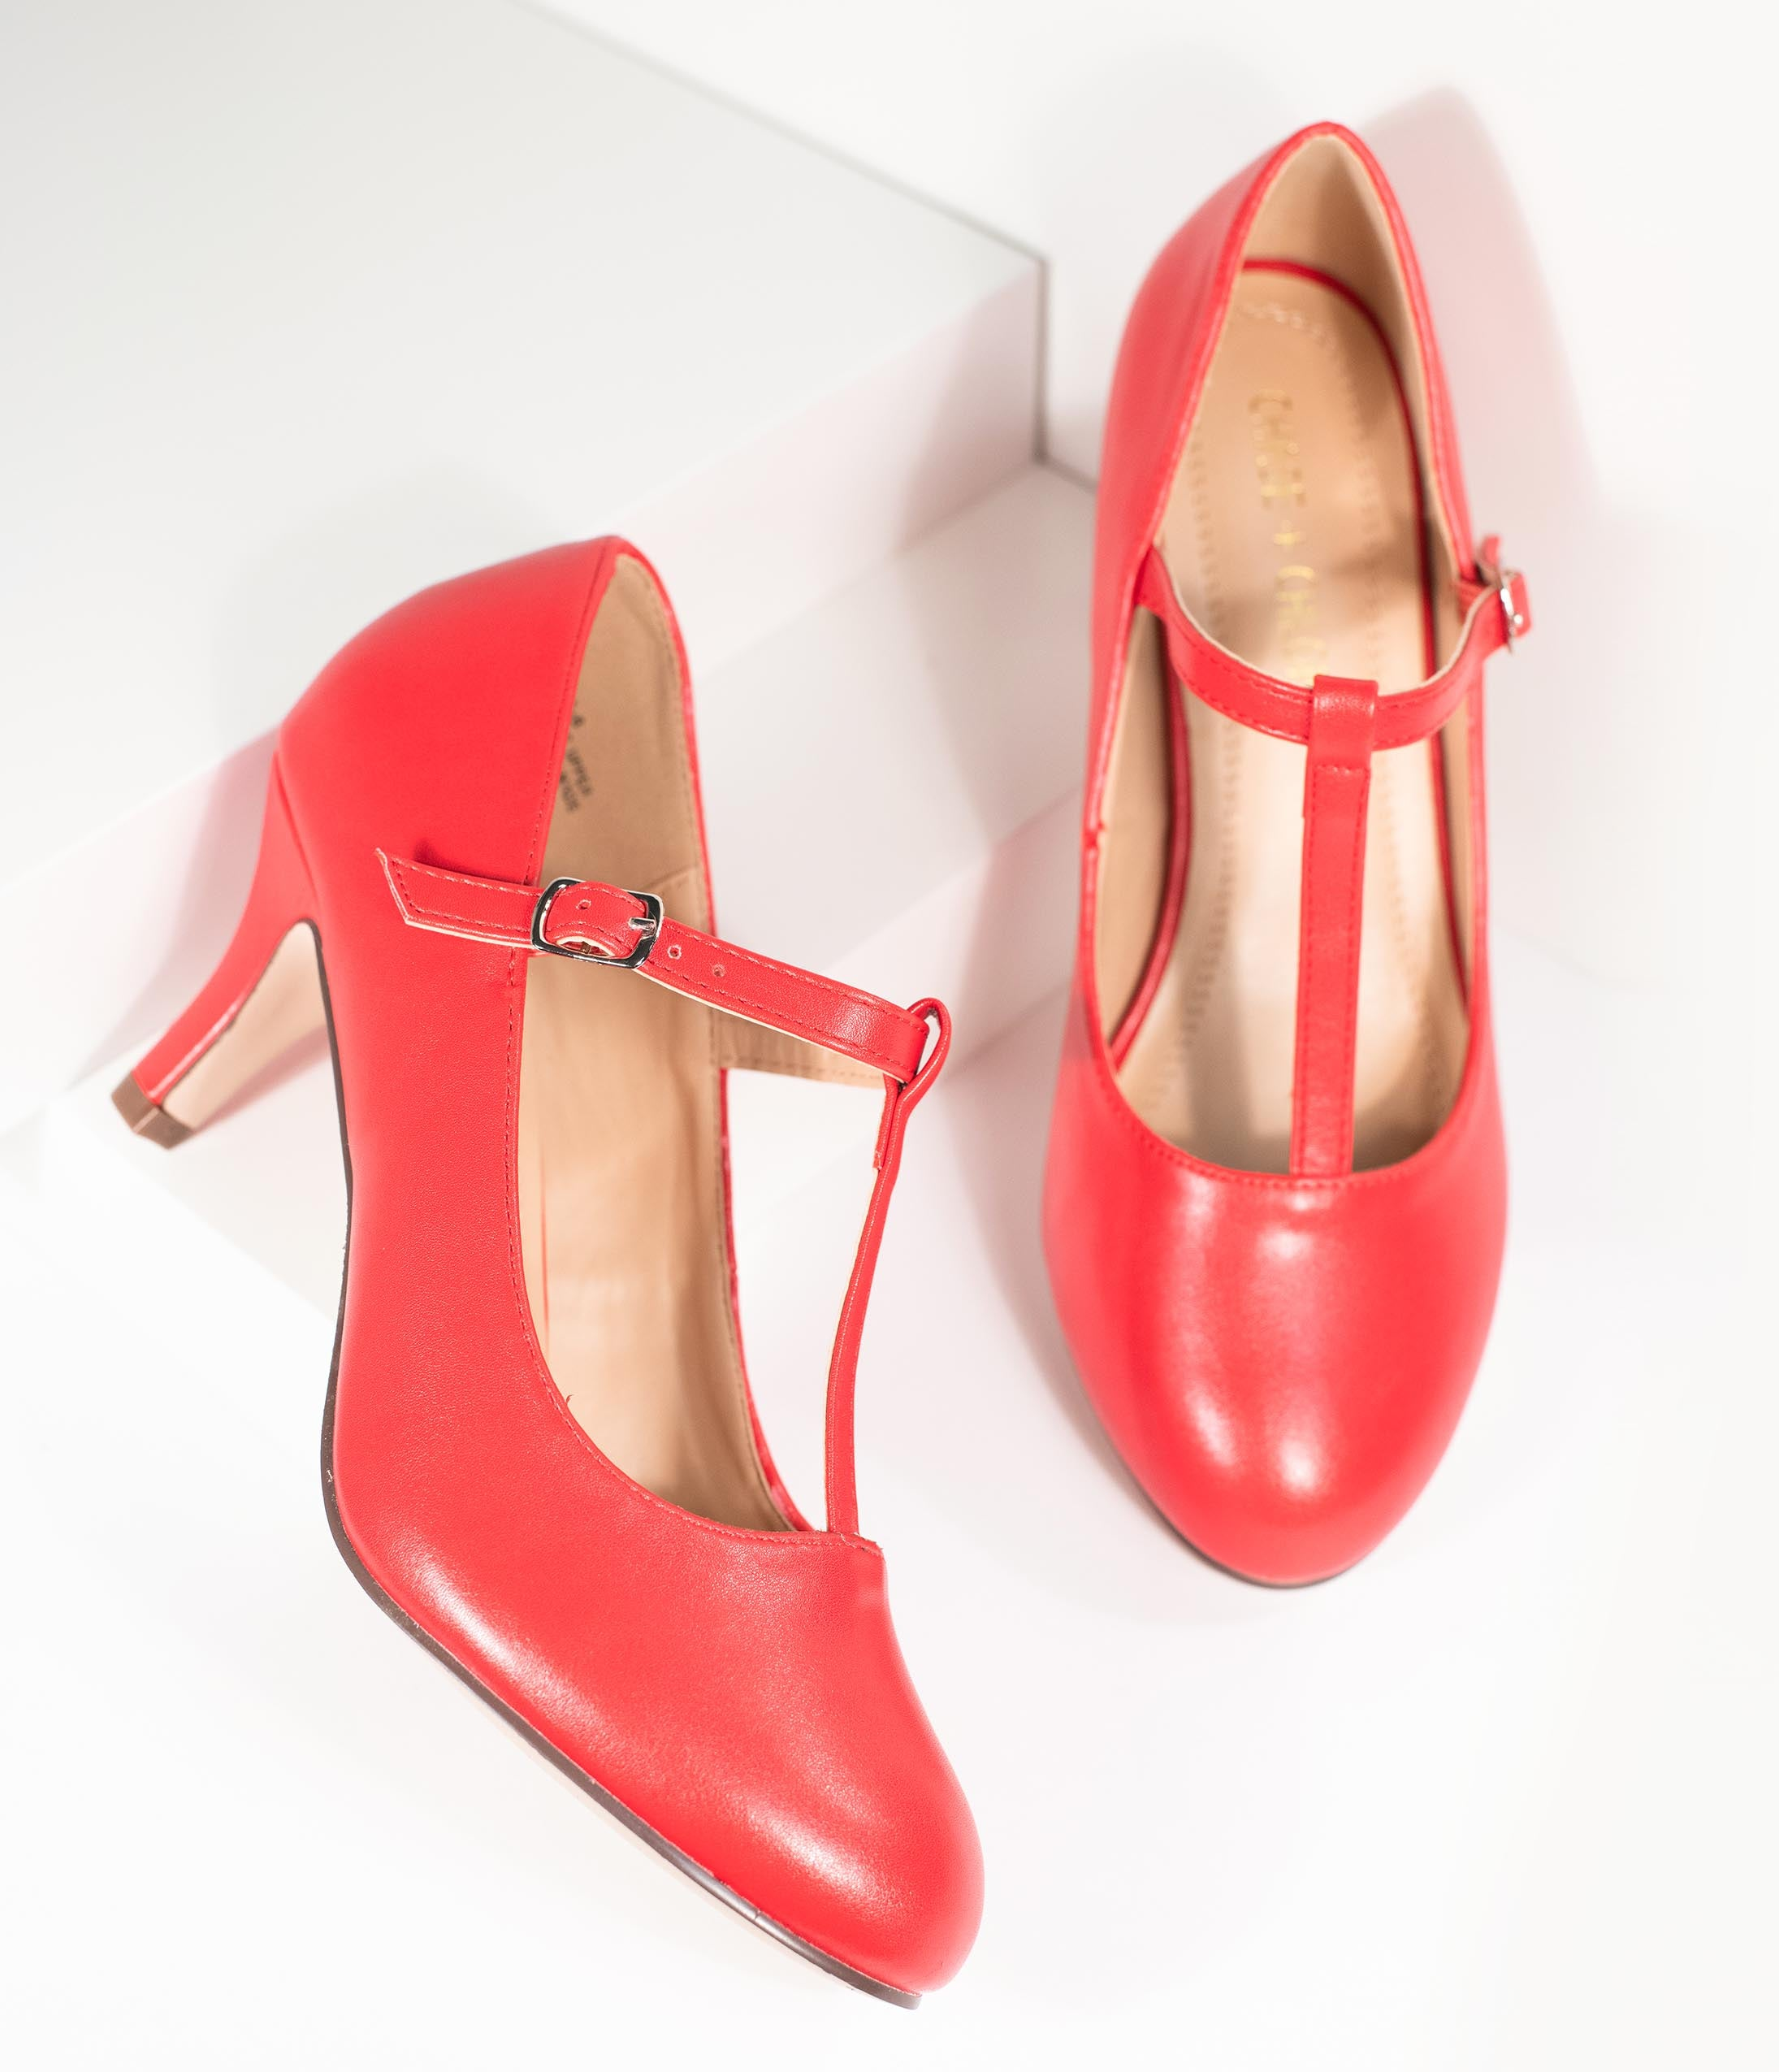 Pin Up Shoes- Heels, Pumps & Flats Vintage Style Red Leatherette T-Strap Heels $46.00 AT vintagedancer.com